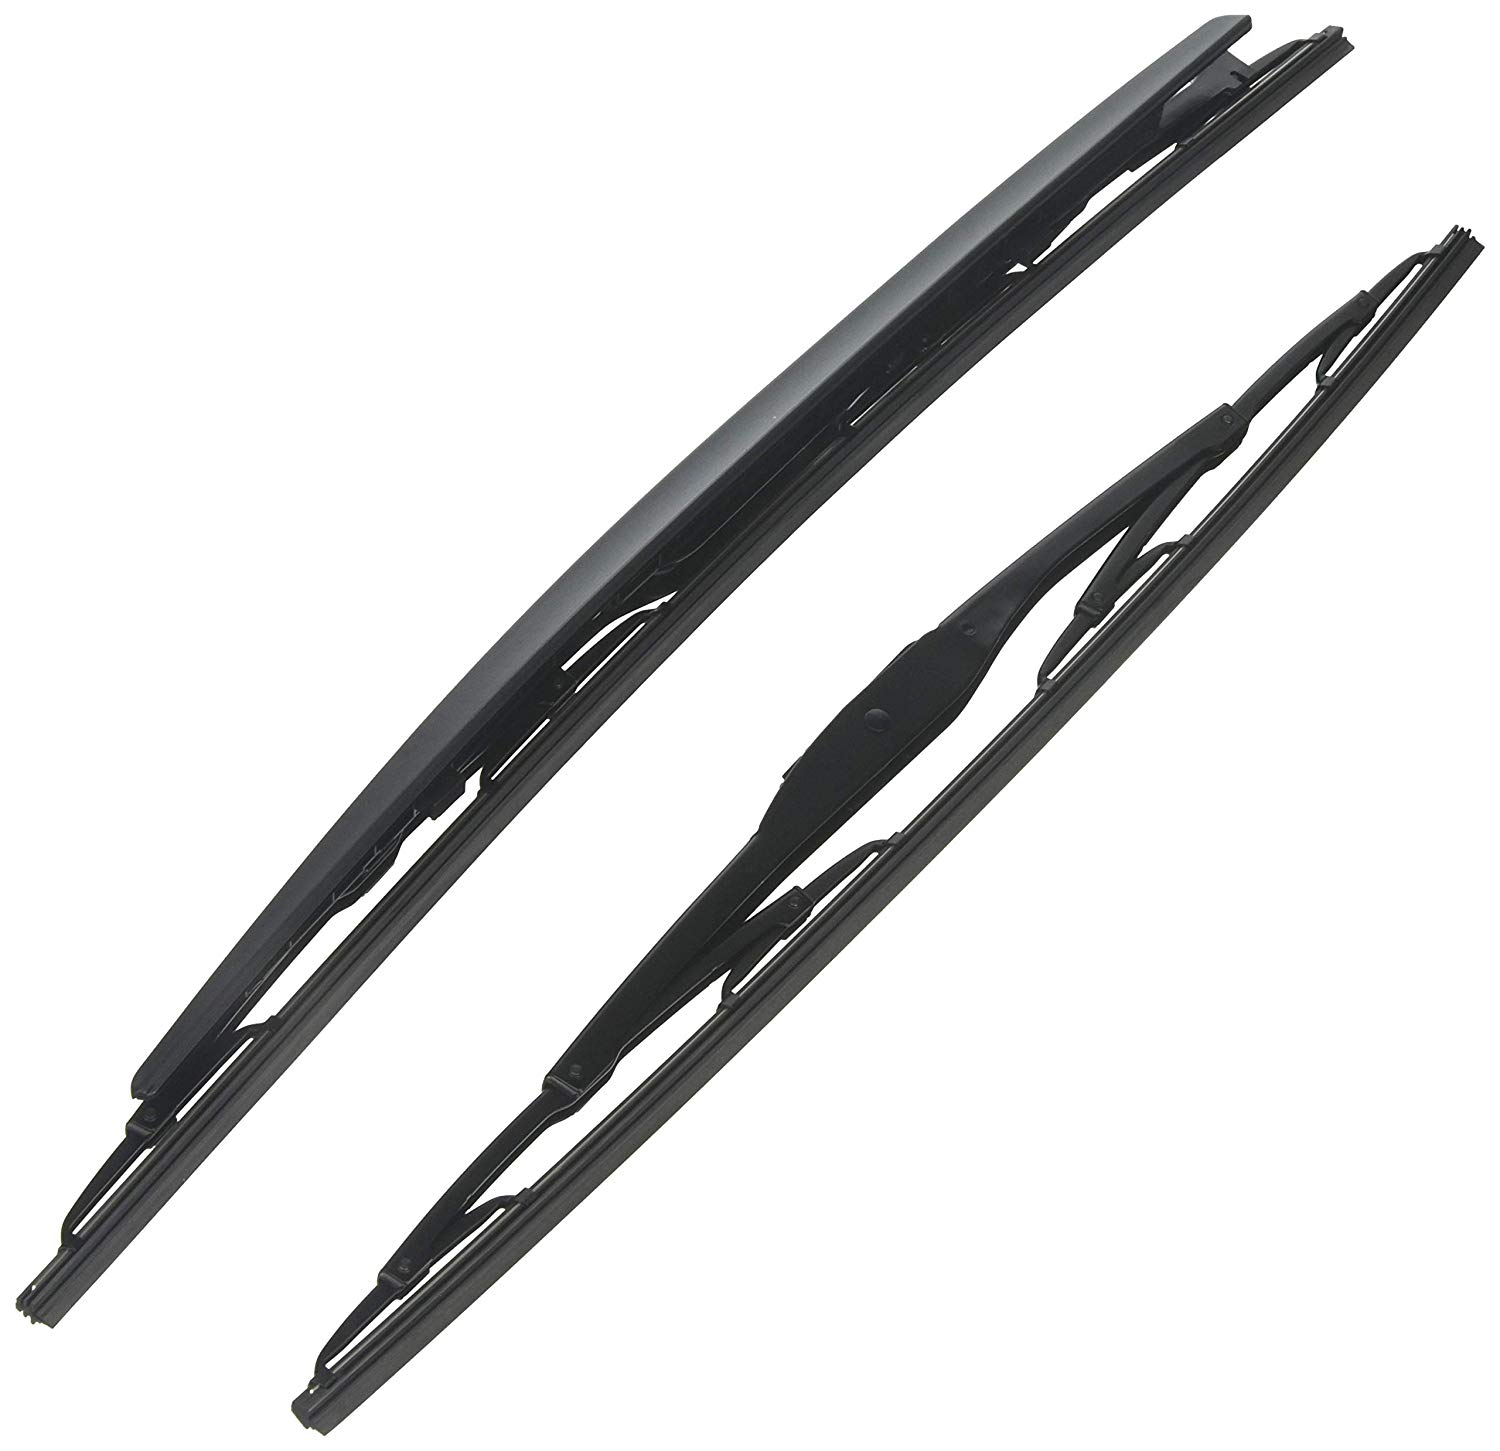 ORIGINAL BMW WIPER BLADE